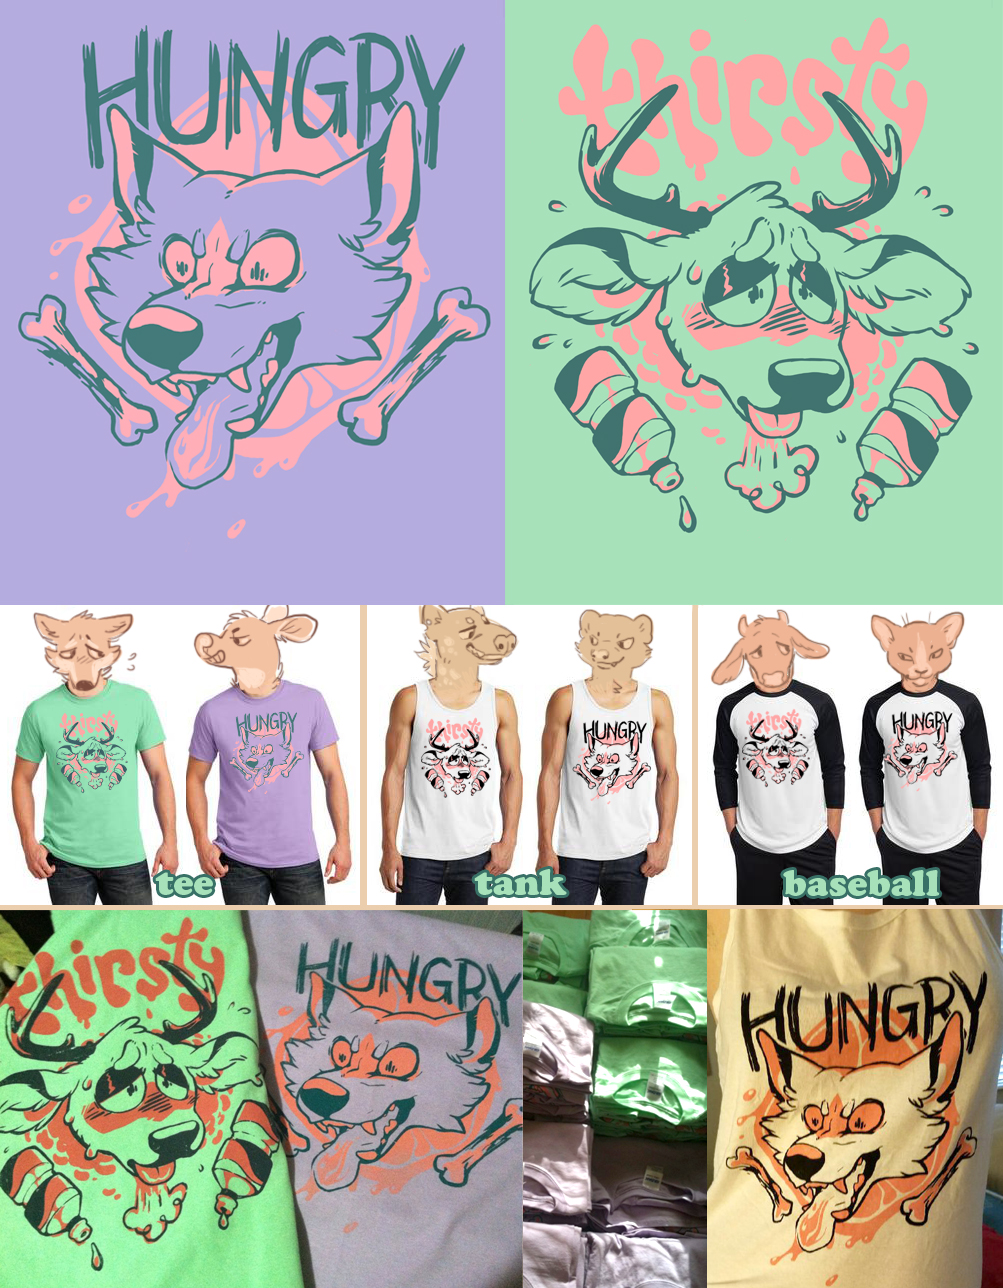 Hungry & Thirsty shirts for preorder! [CLOSED]